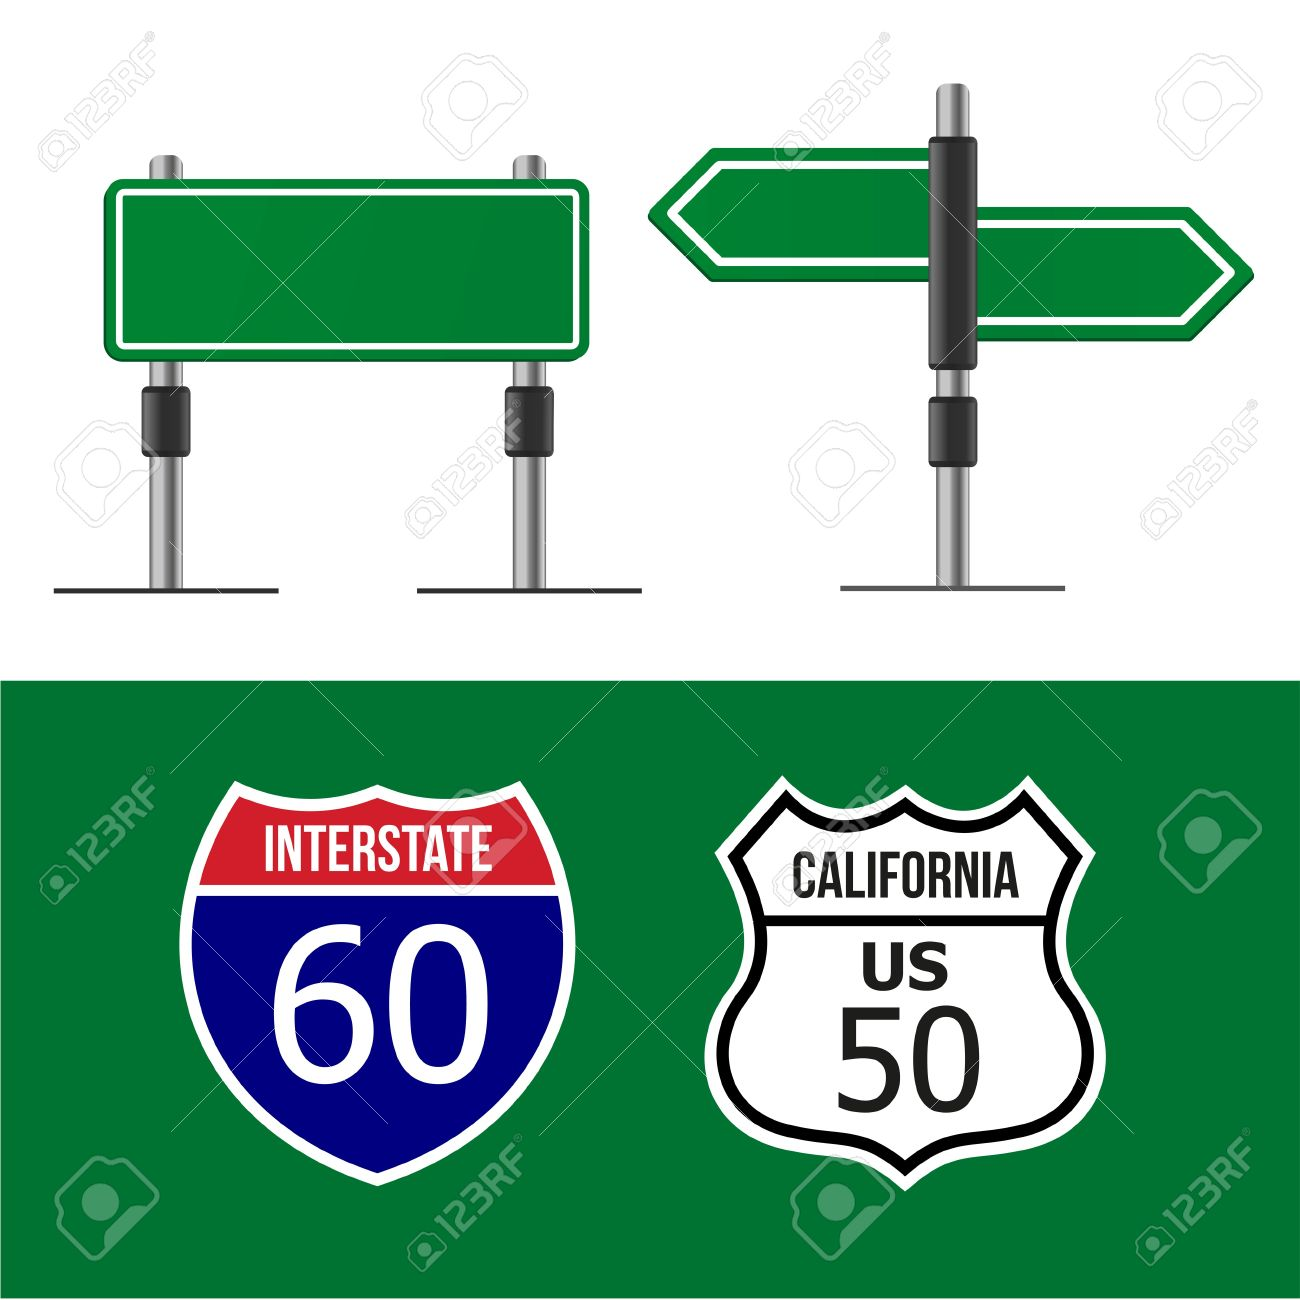 Modern Road Sign Design Template Royalty Free Cliparts, Vectors ...